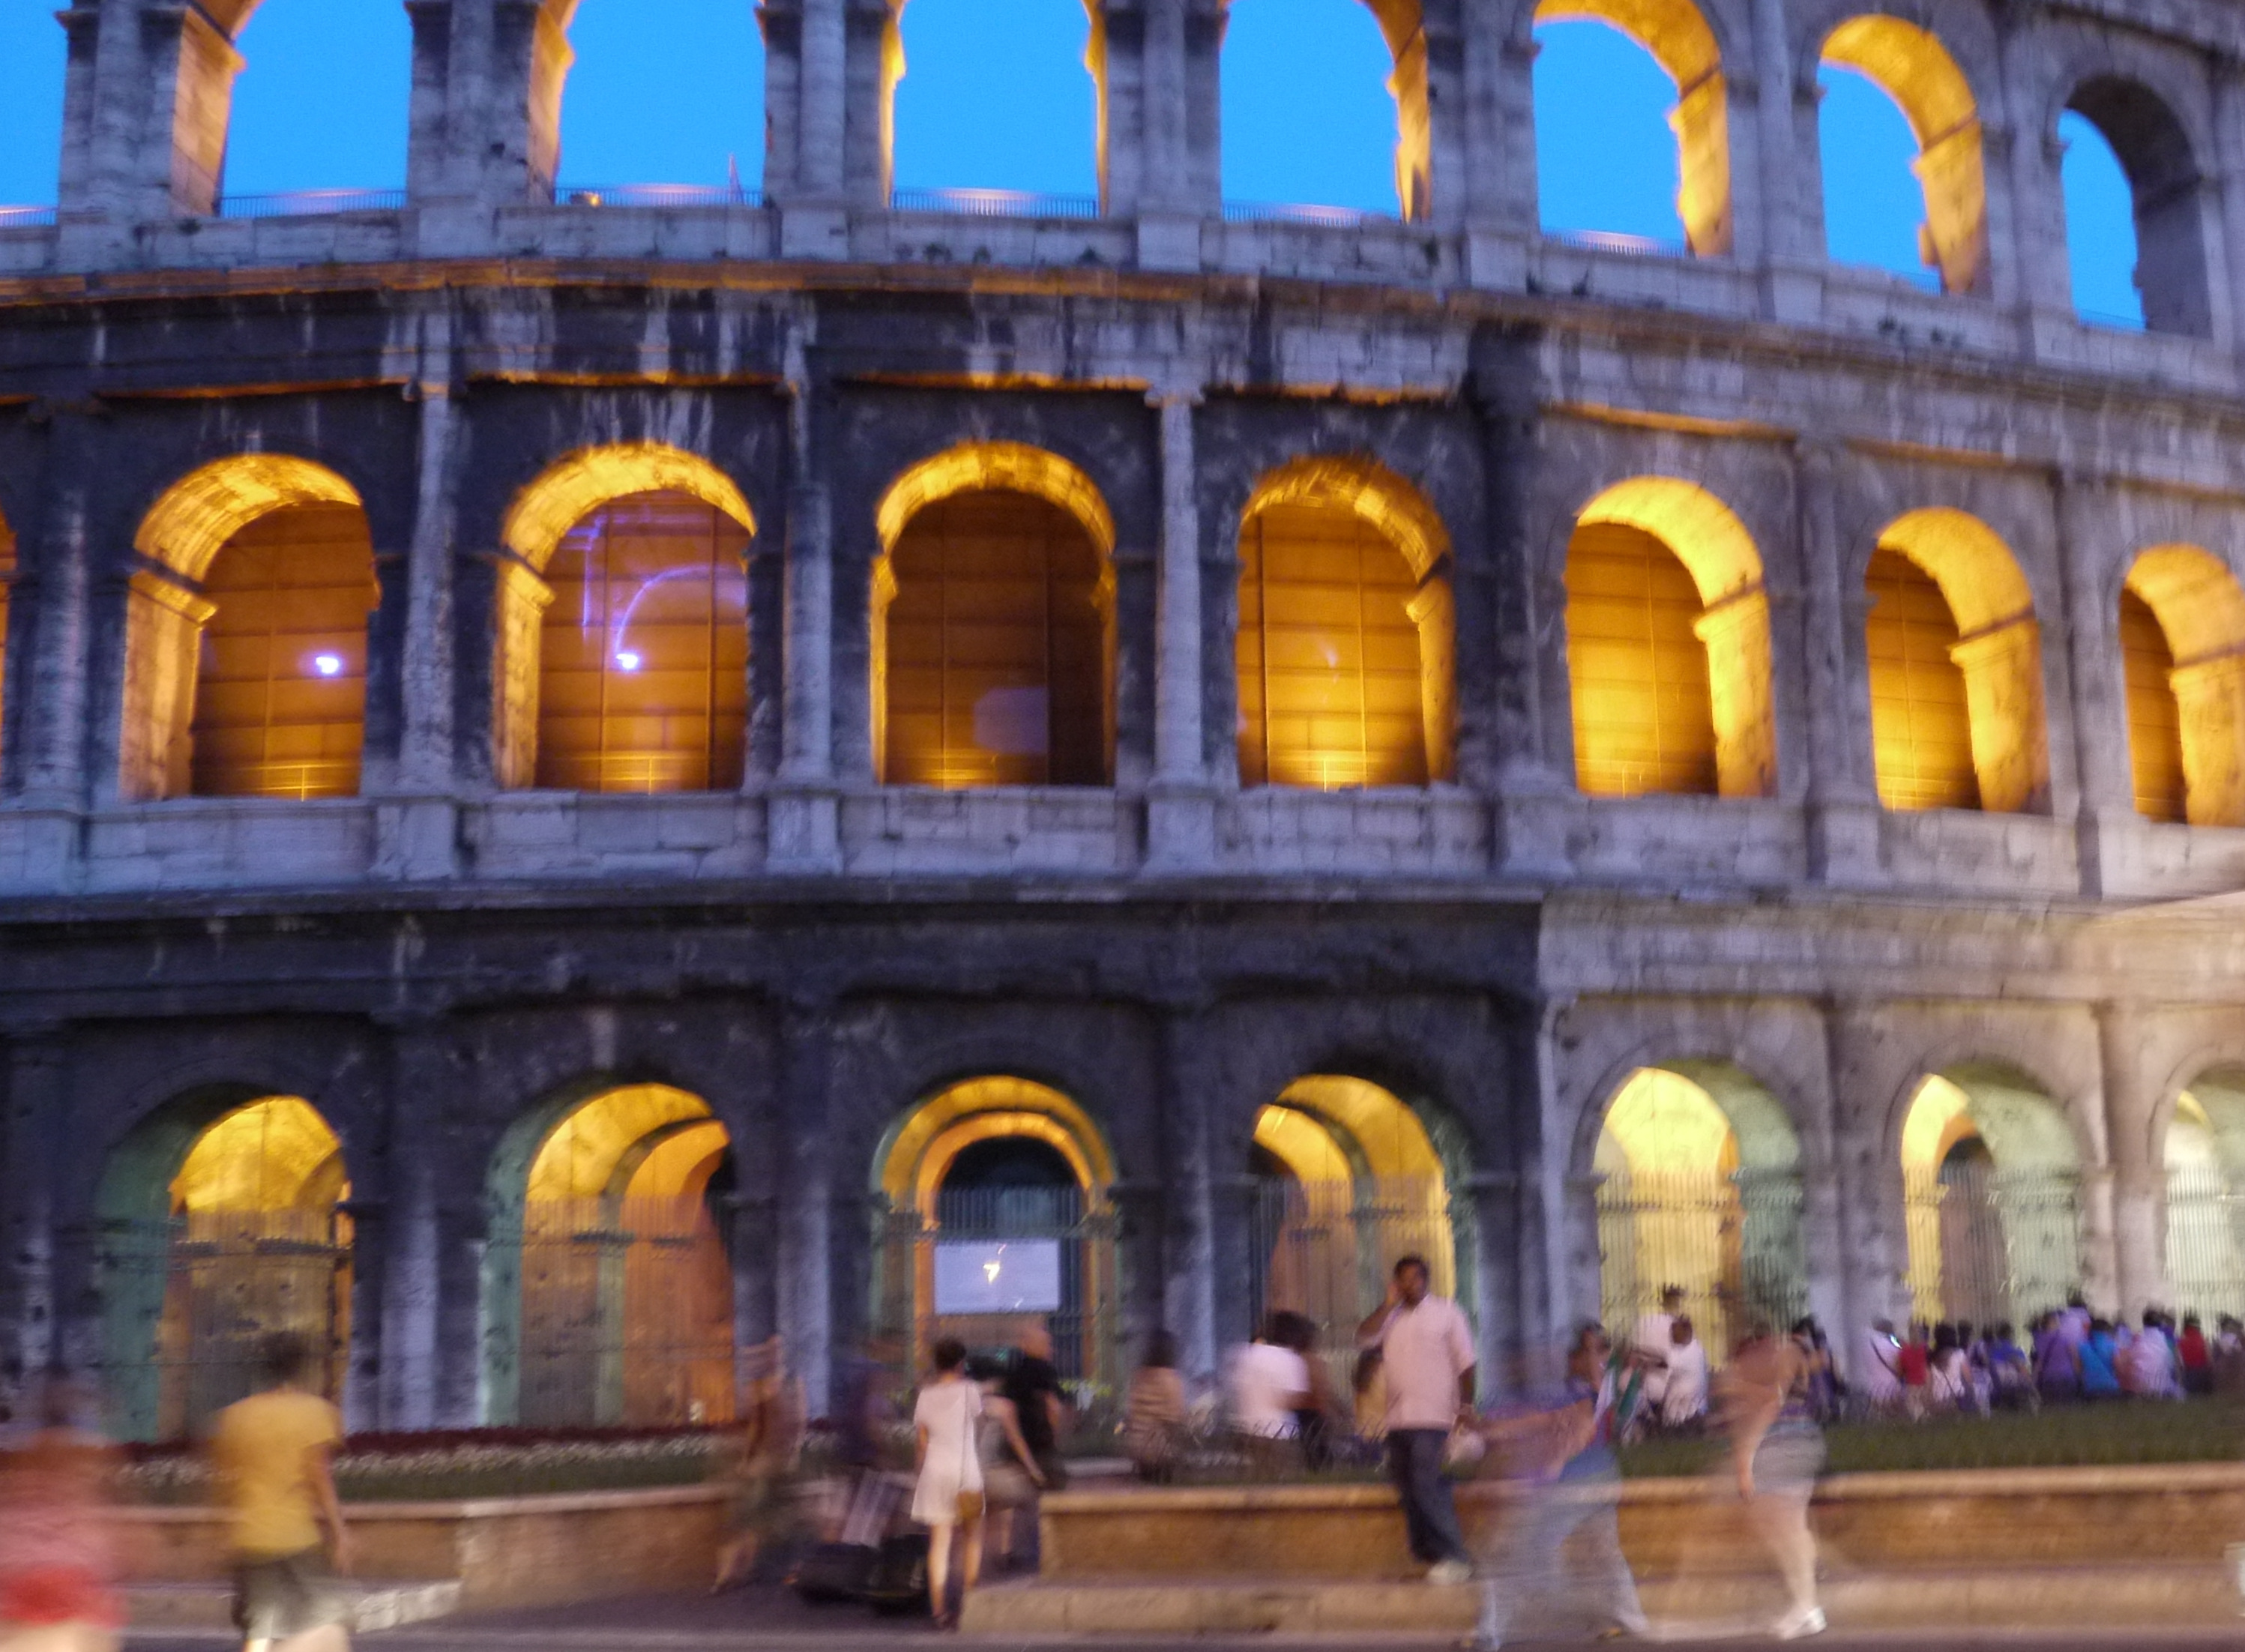 I bought my Colosseum ticket online – now what?